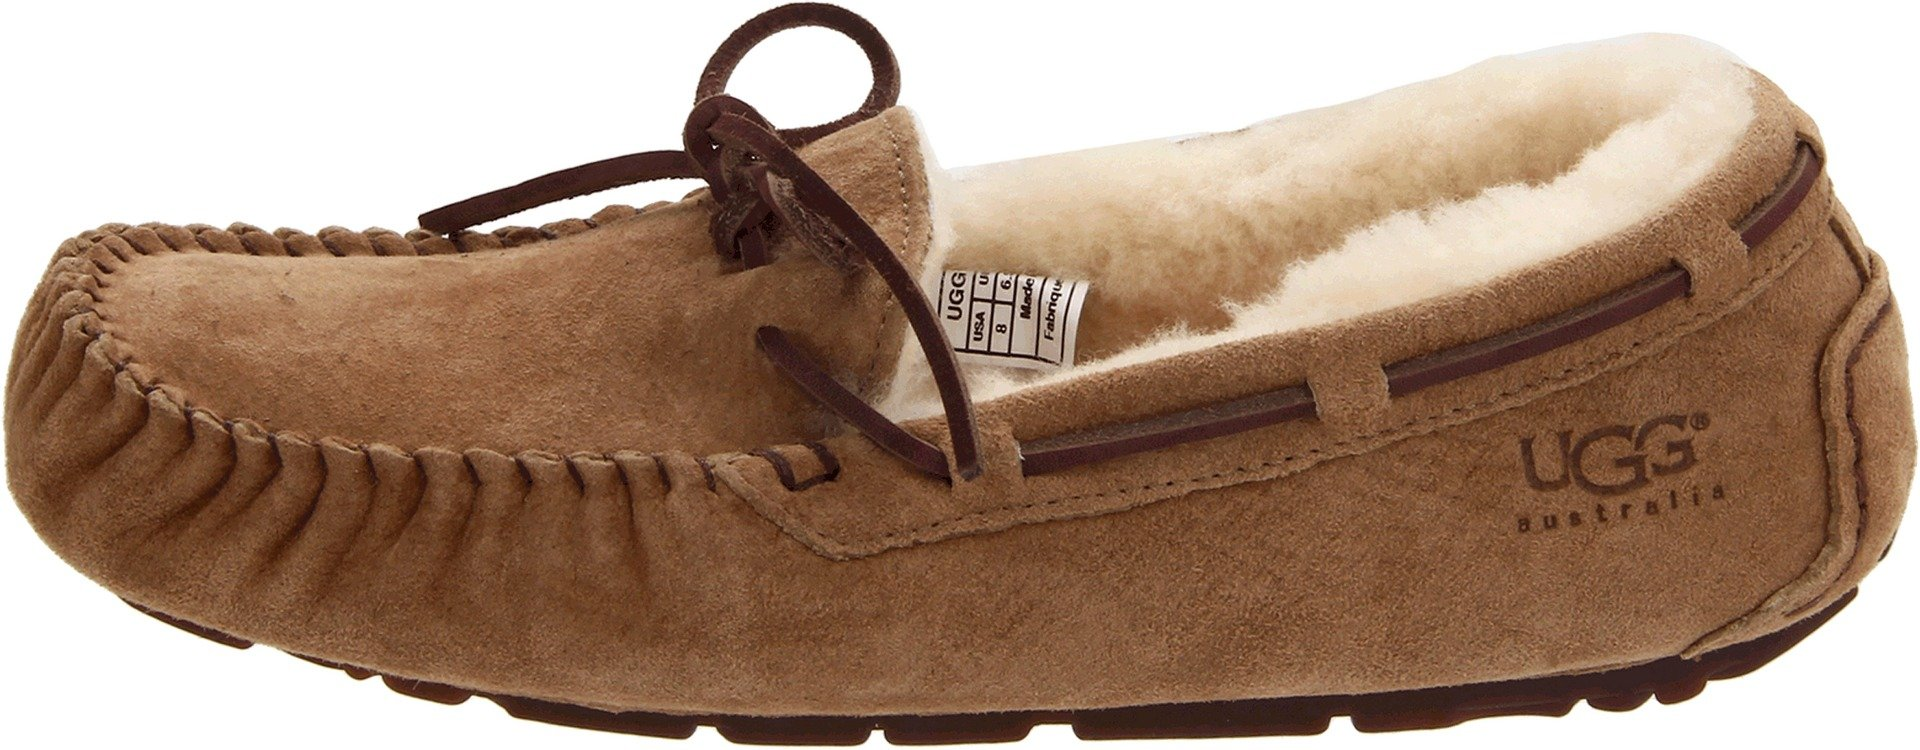 UGG Women's Dakota Moccasin, CHESTNUT, 8 B US by UGG (Image #2)